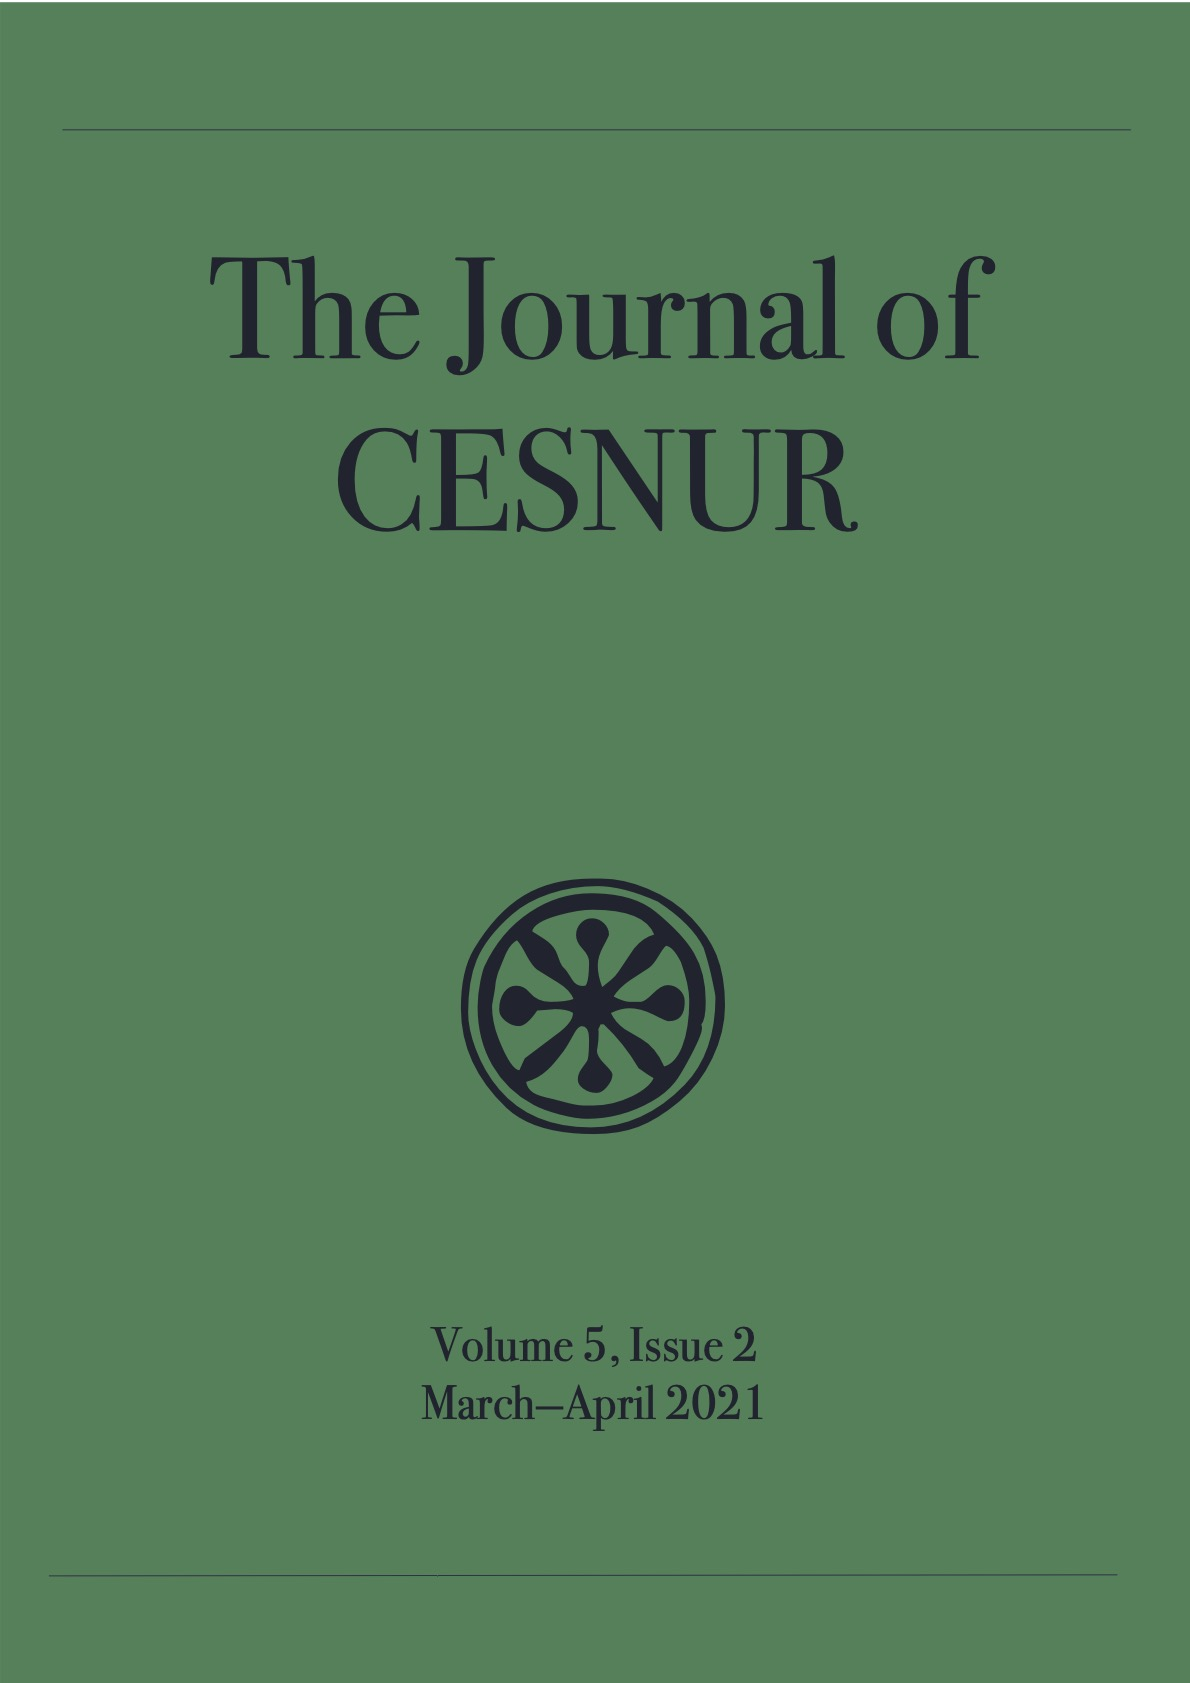 The Journal of Cesnur-Volume 5, issue 2